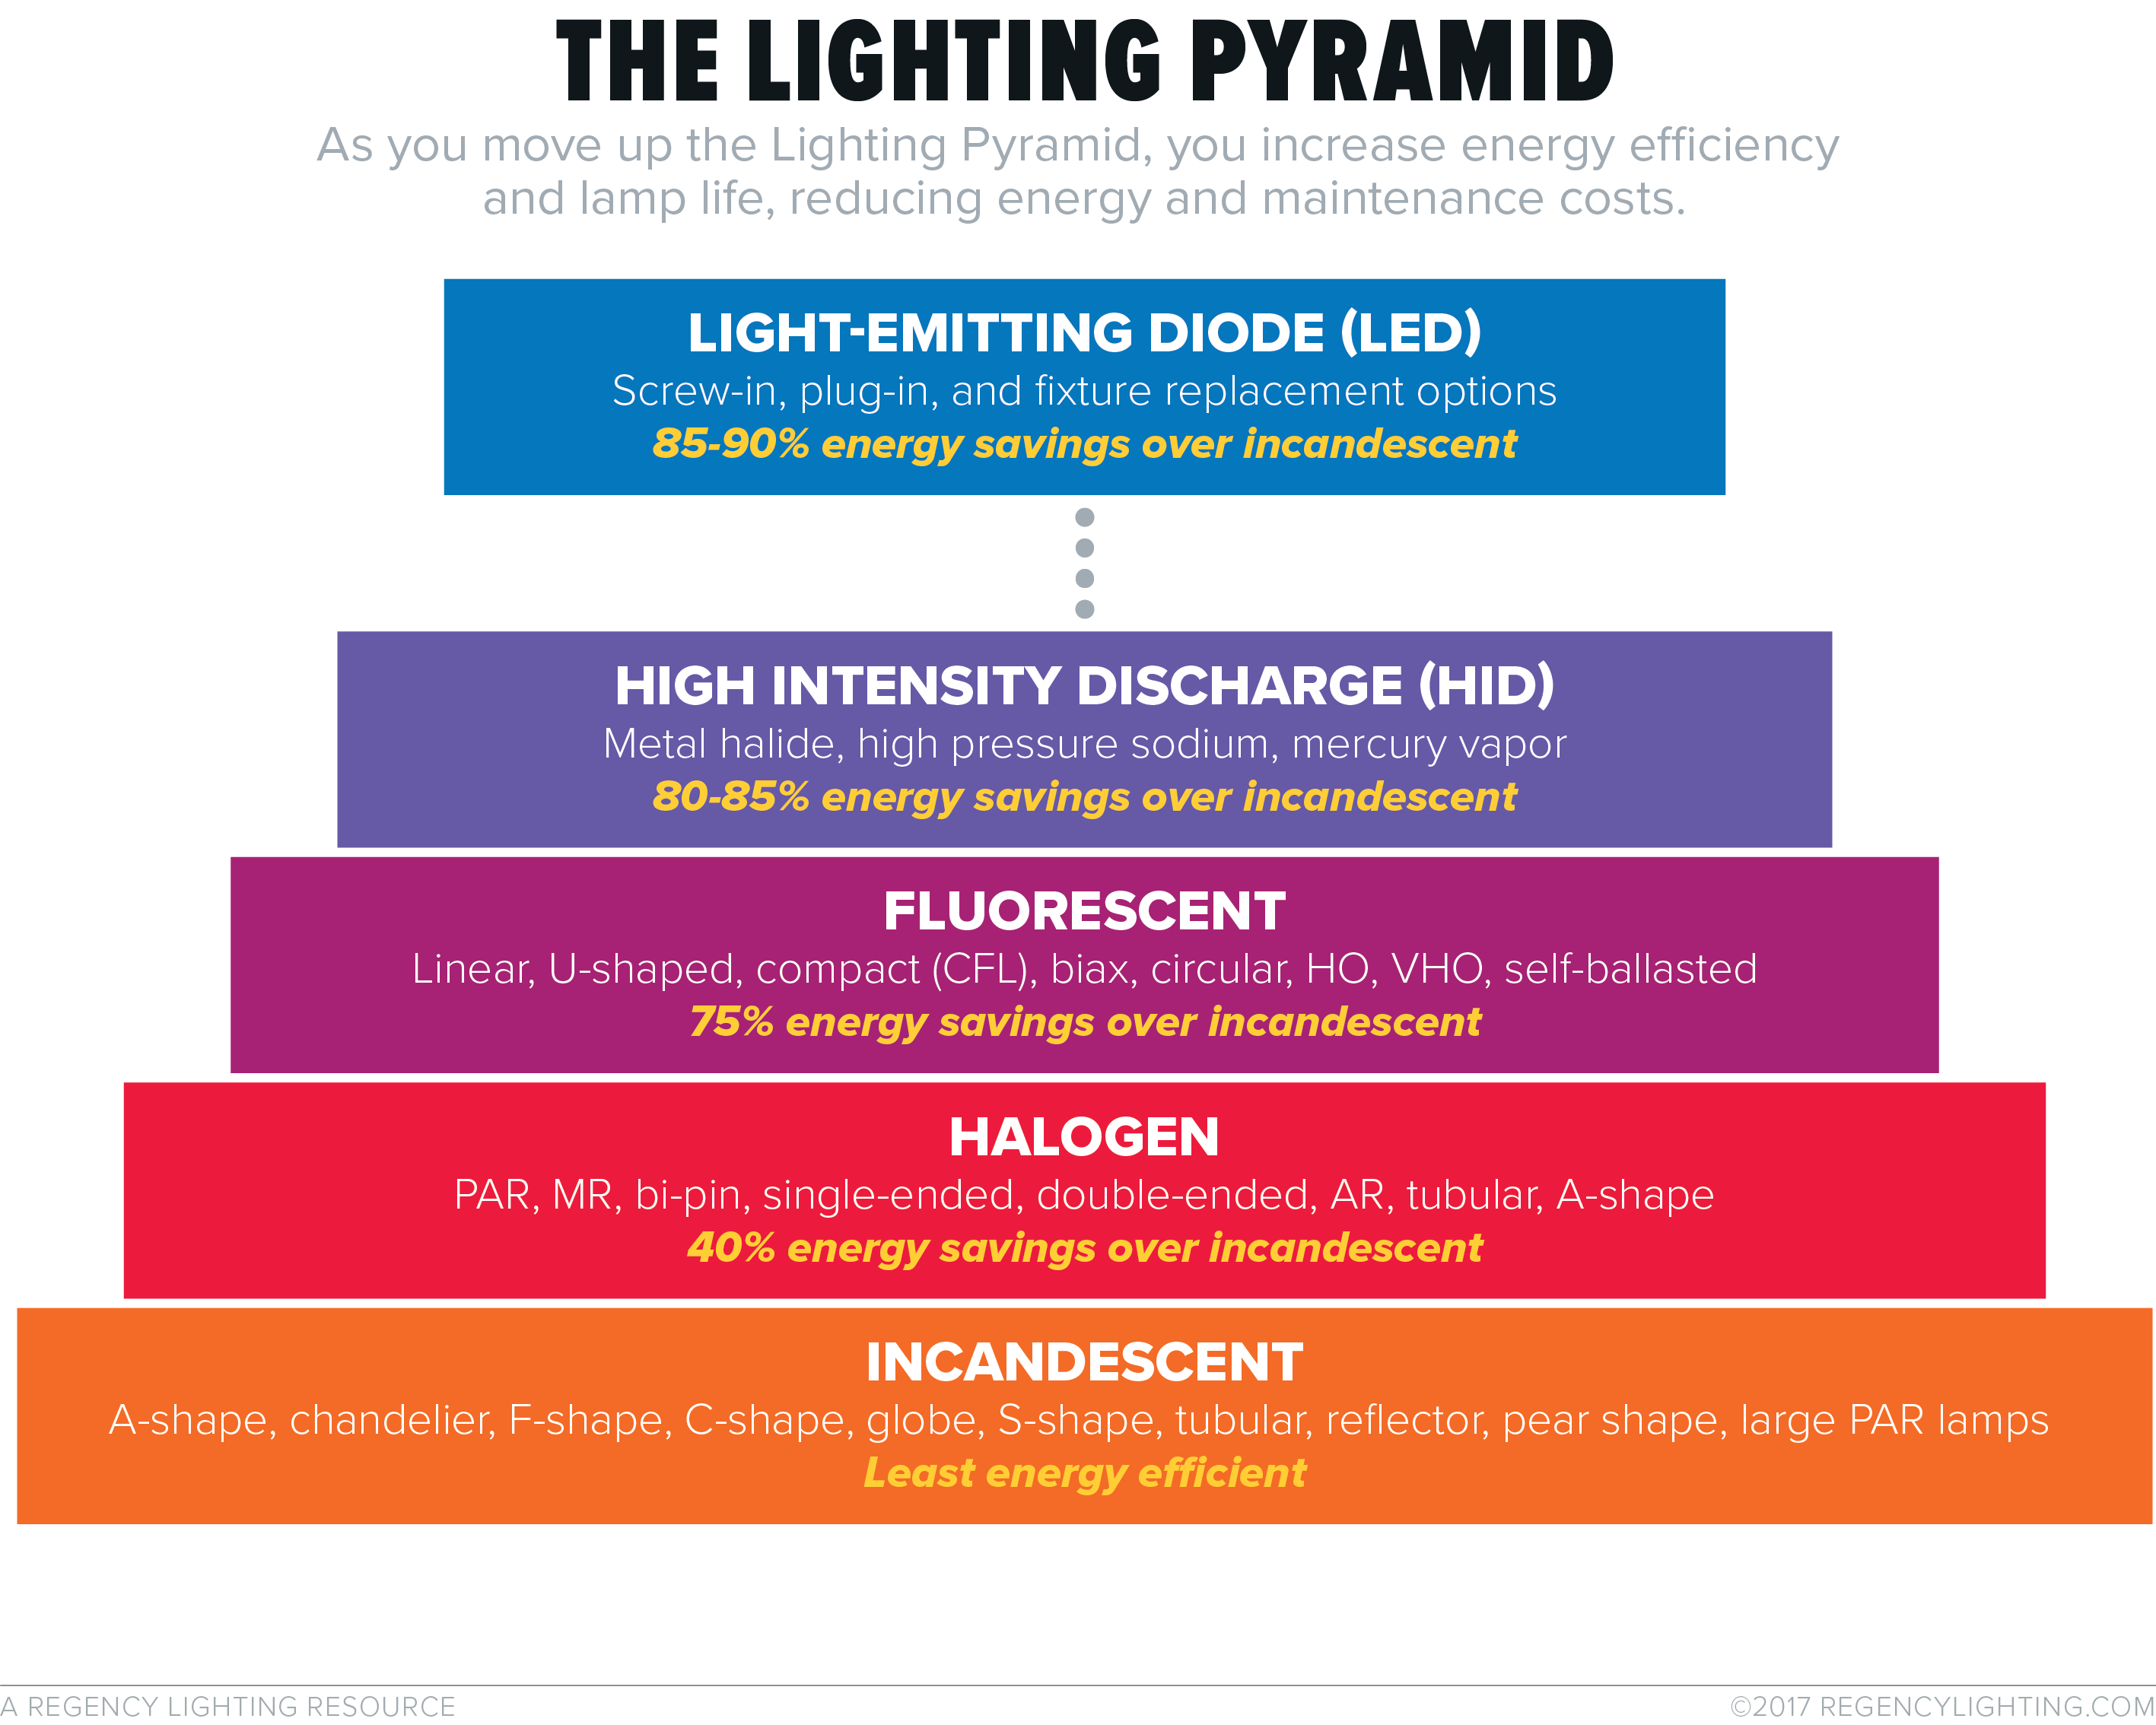 Graphic-Lighting-Pyramid-1.png